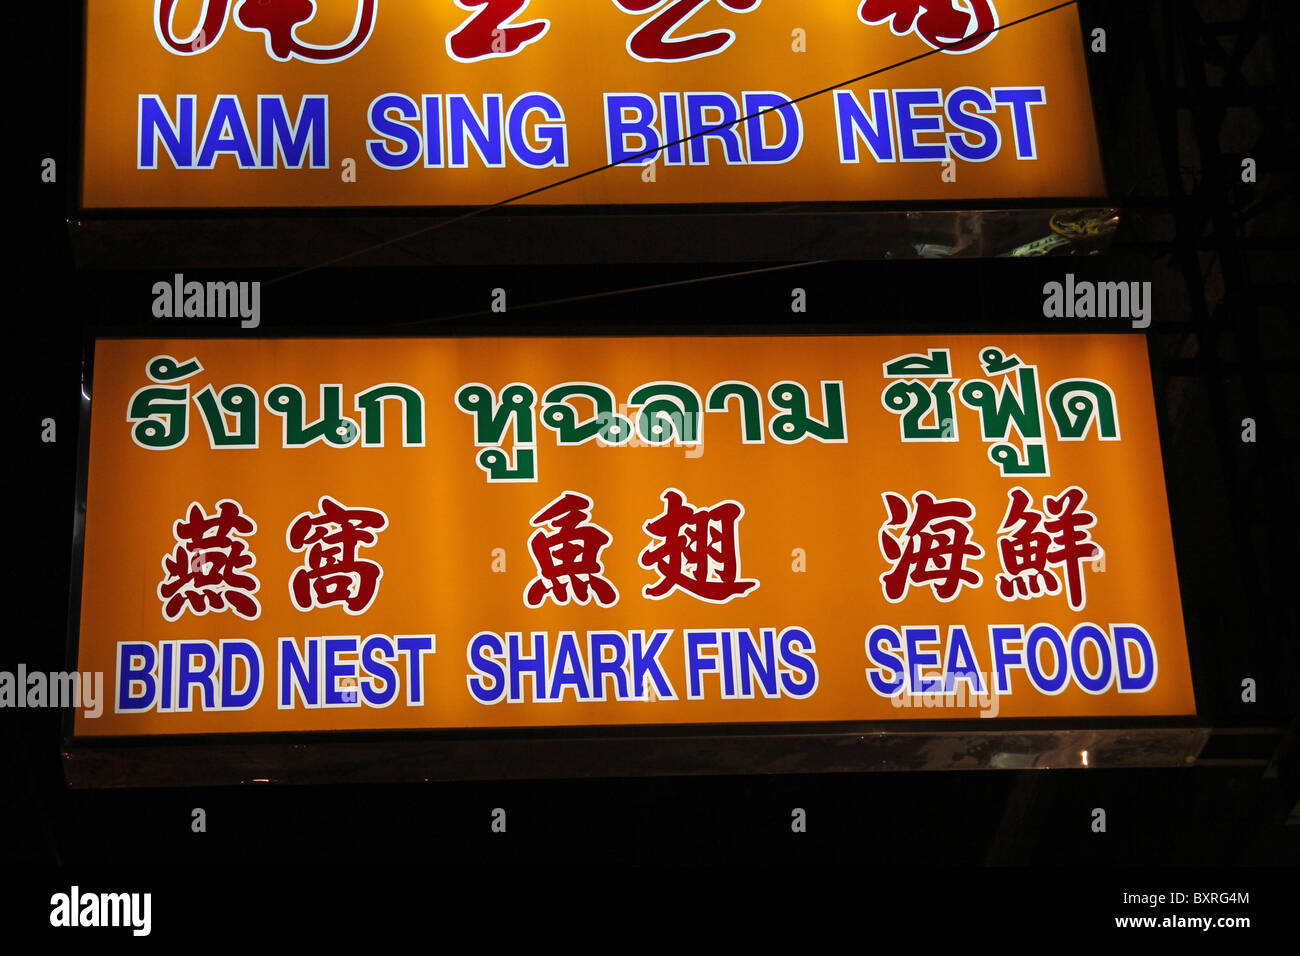 Chinese Restaurant With Birds Nest And Shark Fin Soup Signs With